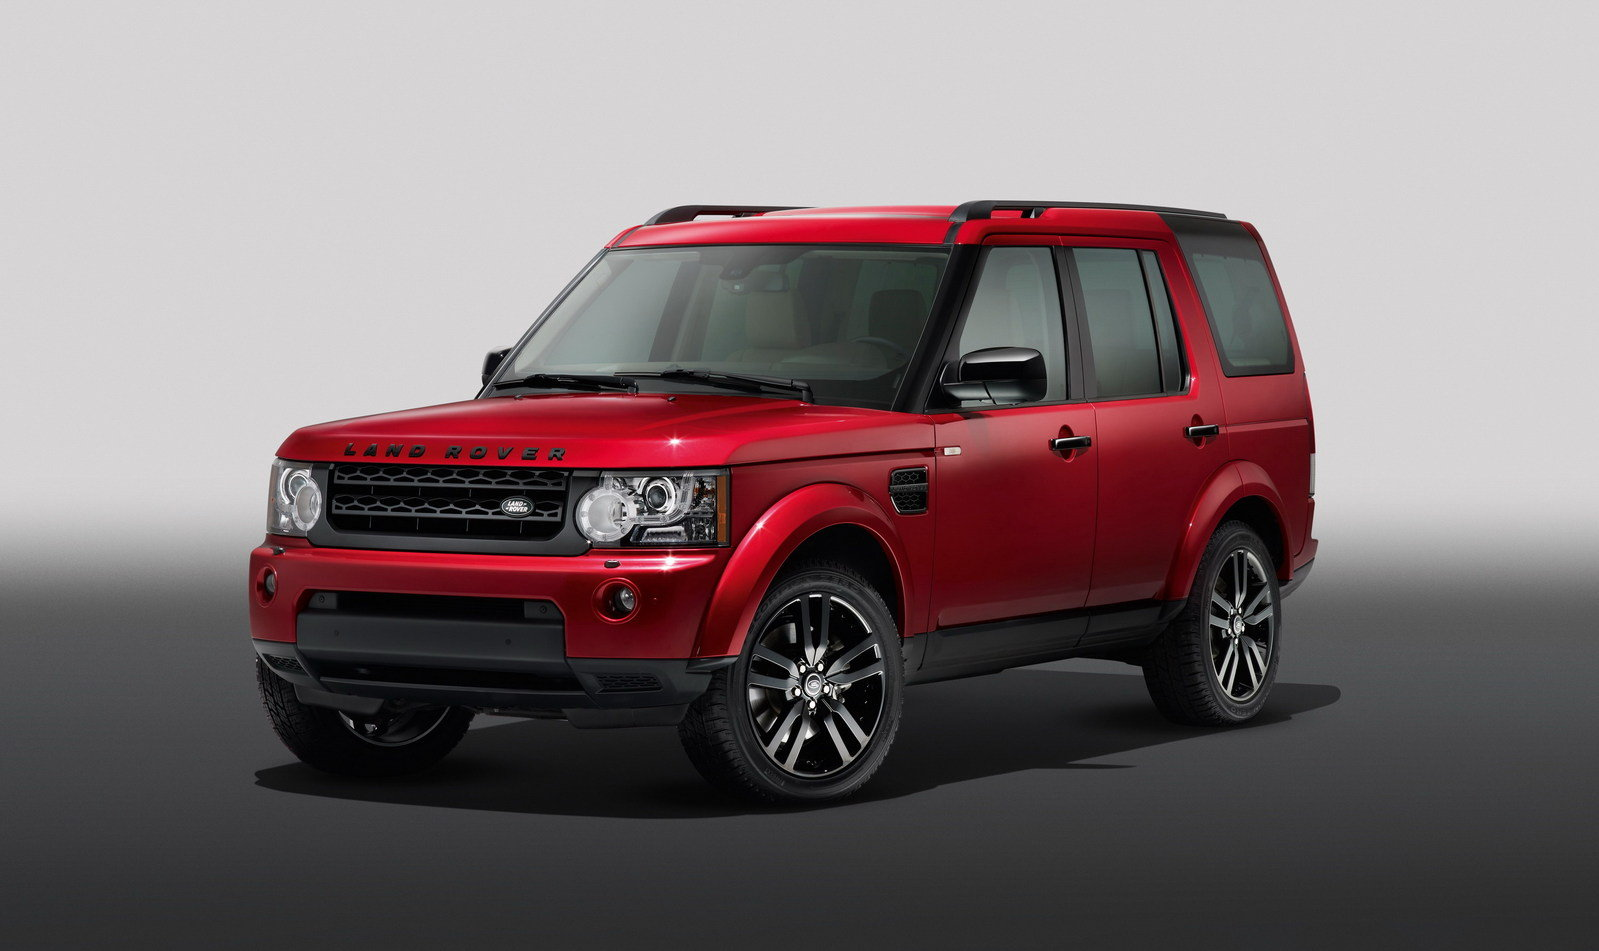 2013 land rover discovery 4 black design packs review top speed. Black Bedroom Furniture Sets. Home Design Ideas